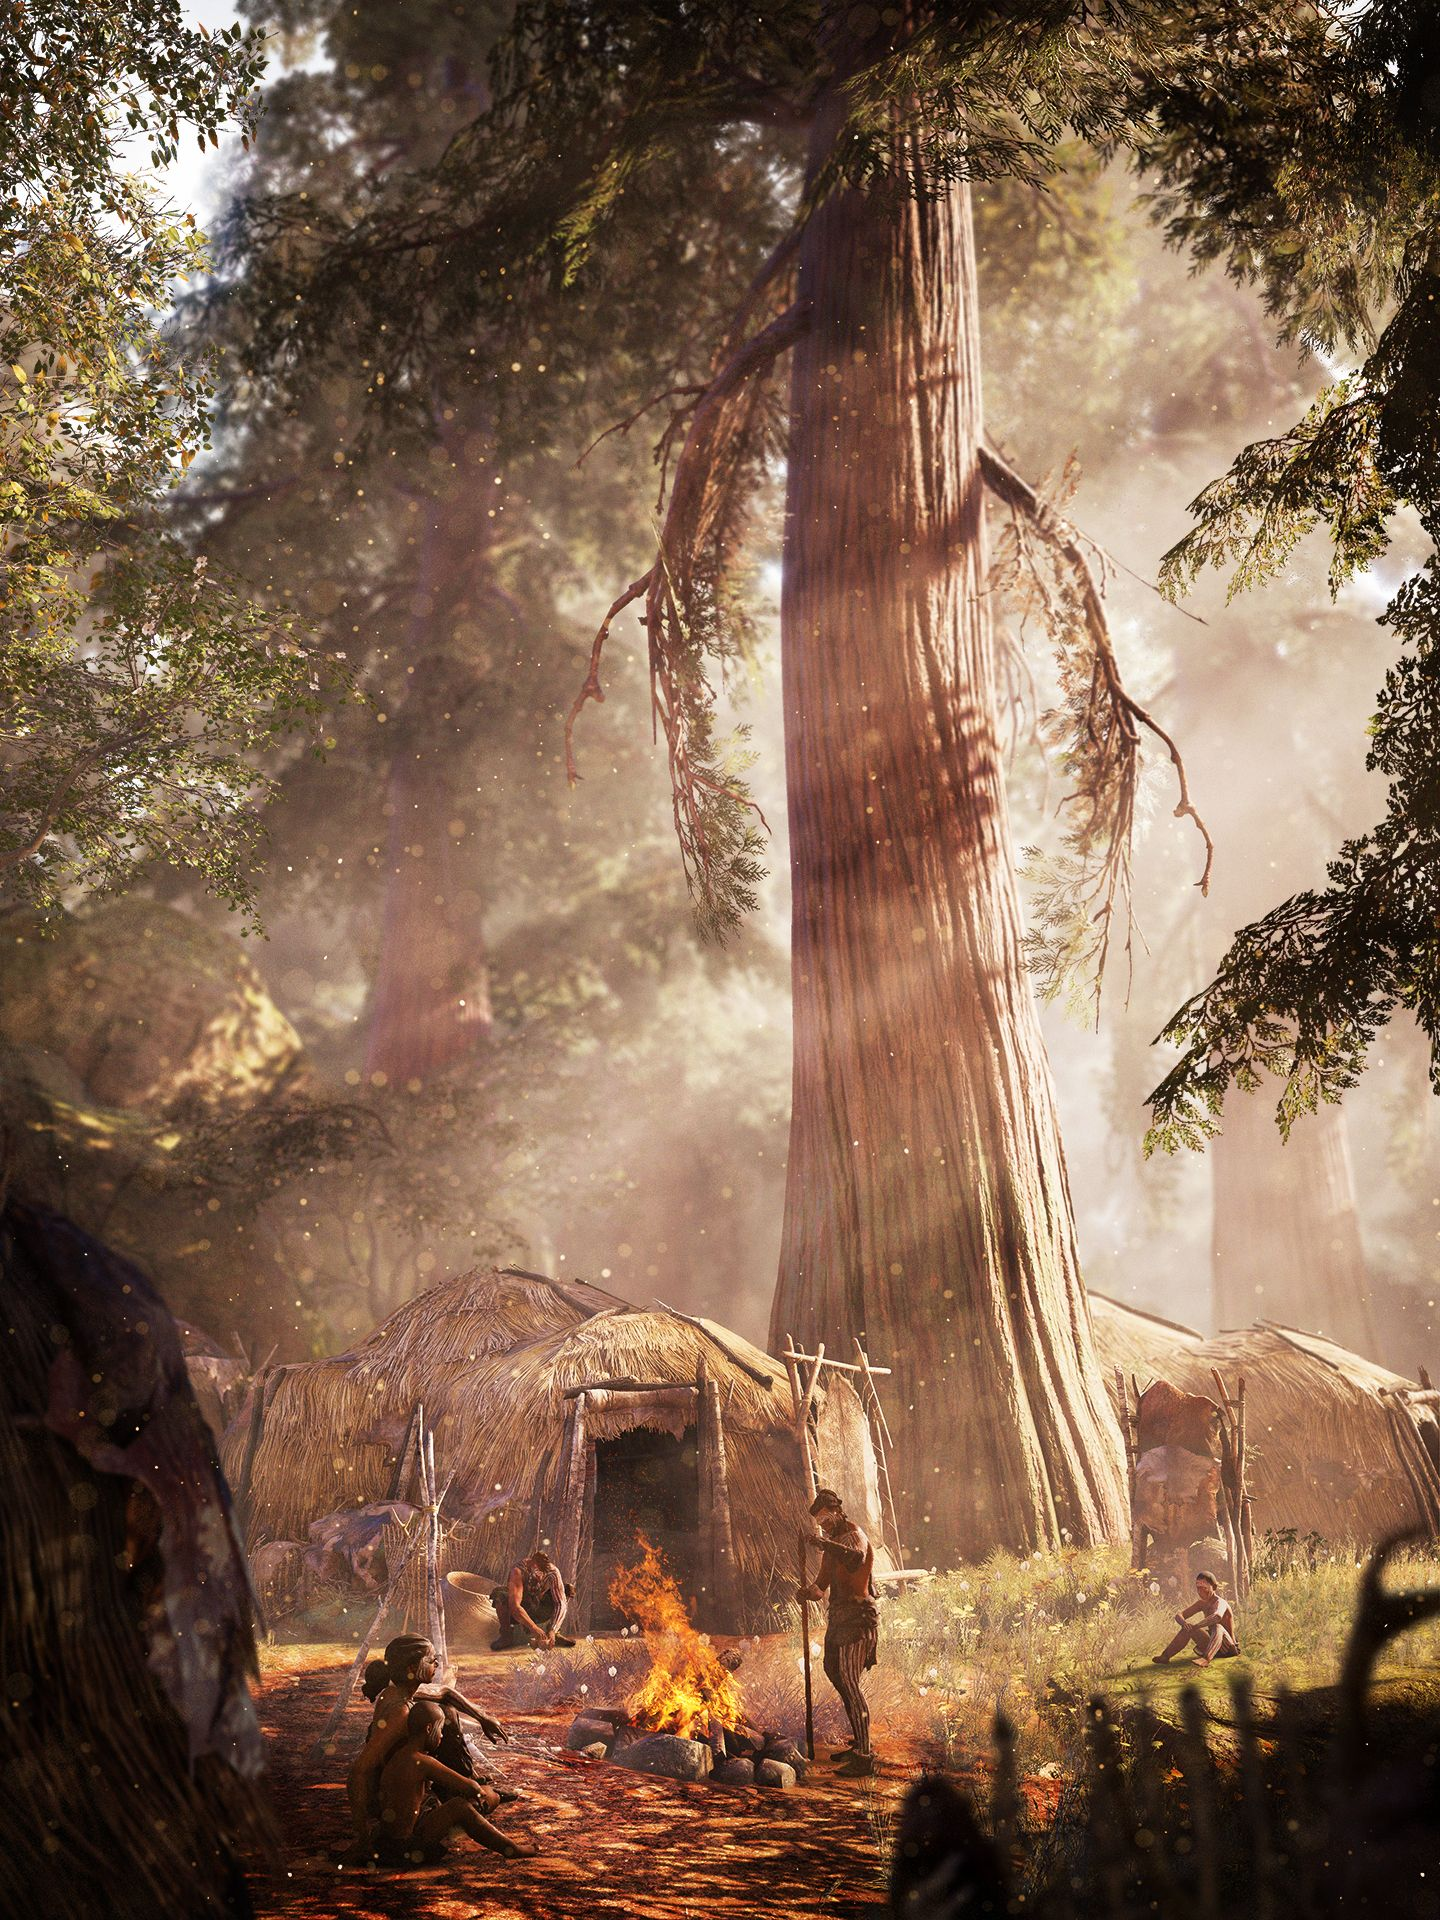 Far Cry Primal ubisoft (With images) Far cry primal